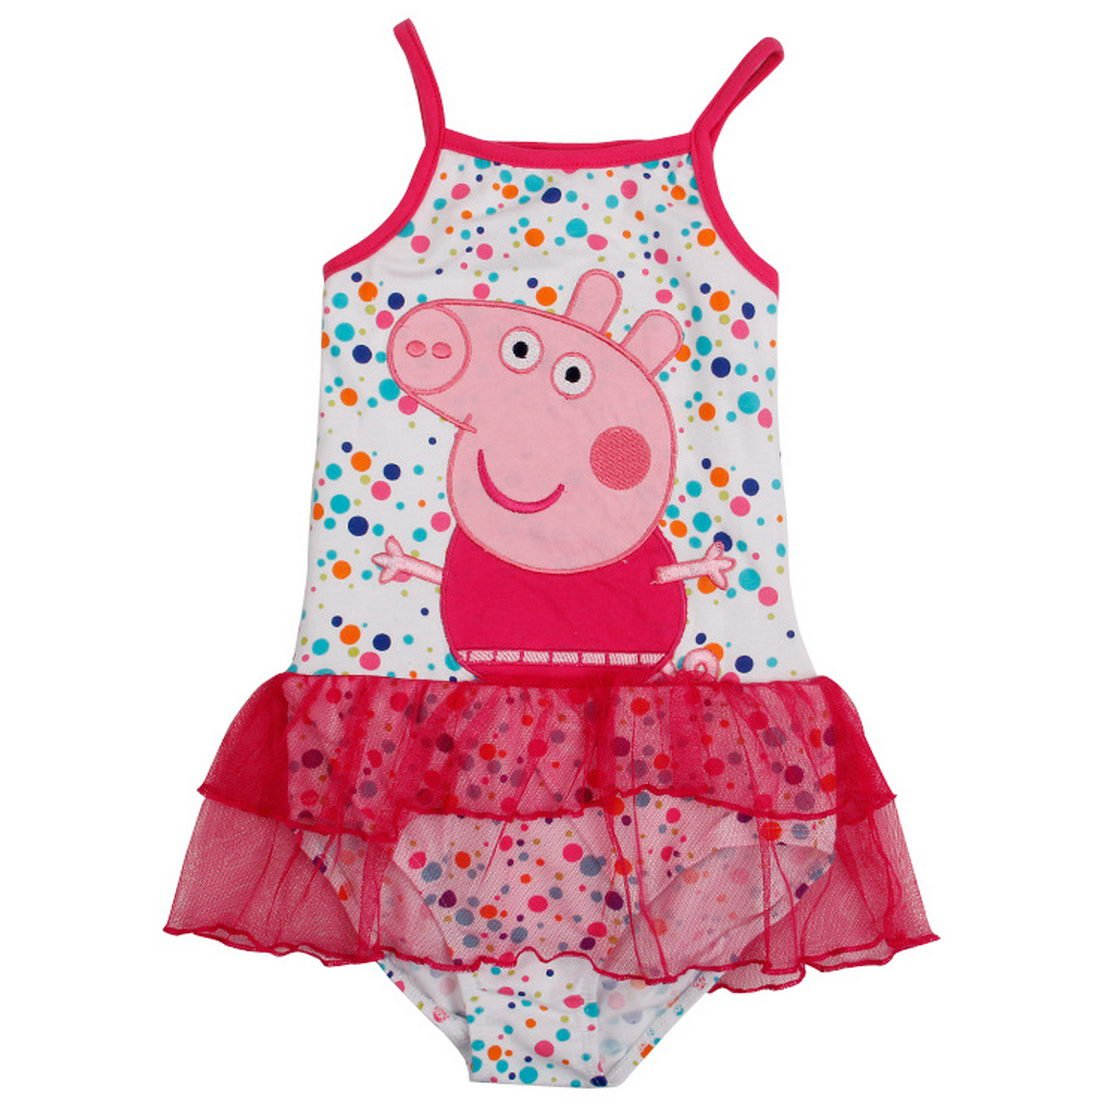 Peppa Pig Little Girls Dot Cotton Swimsuits 2-8Y Tiful